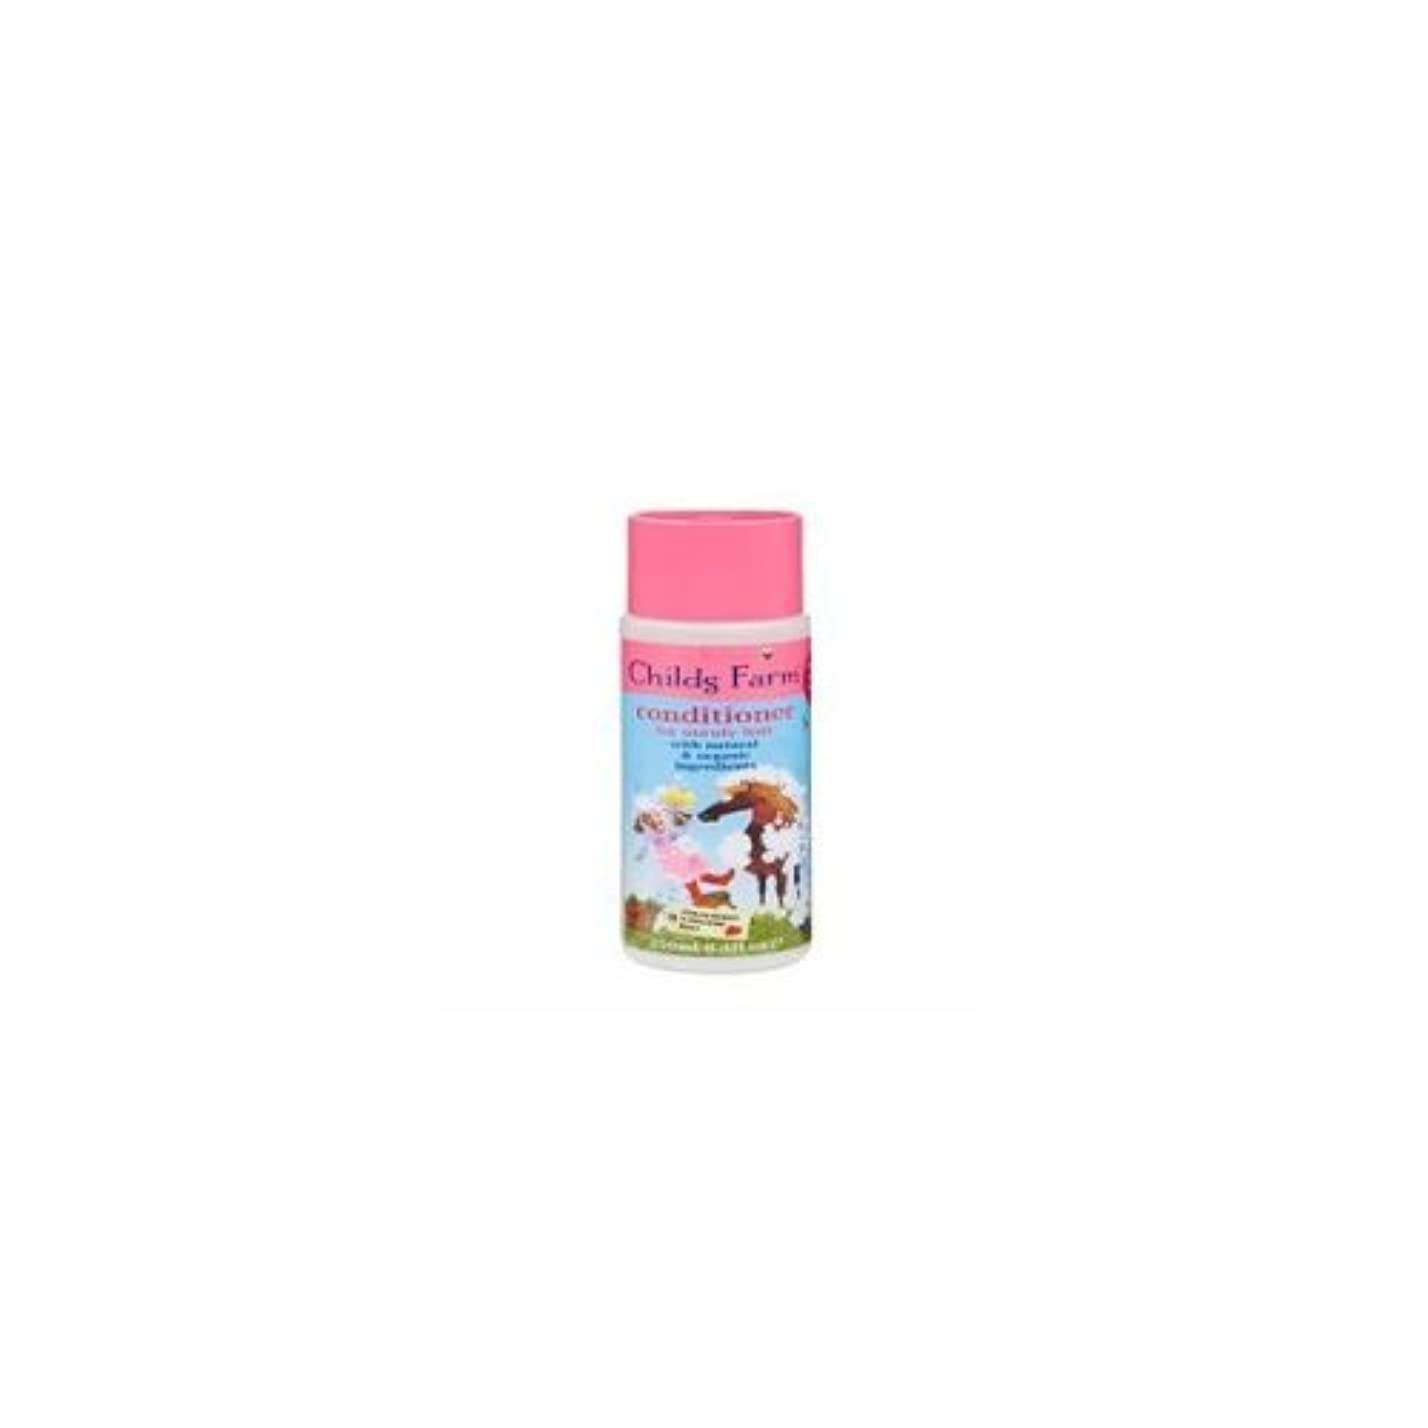 Conditioner for Unruly Hair (250ml) x 2 Pack Deal Saver by Childs Farm [並行輸入品]